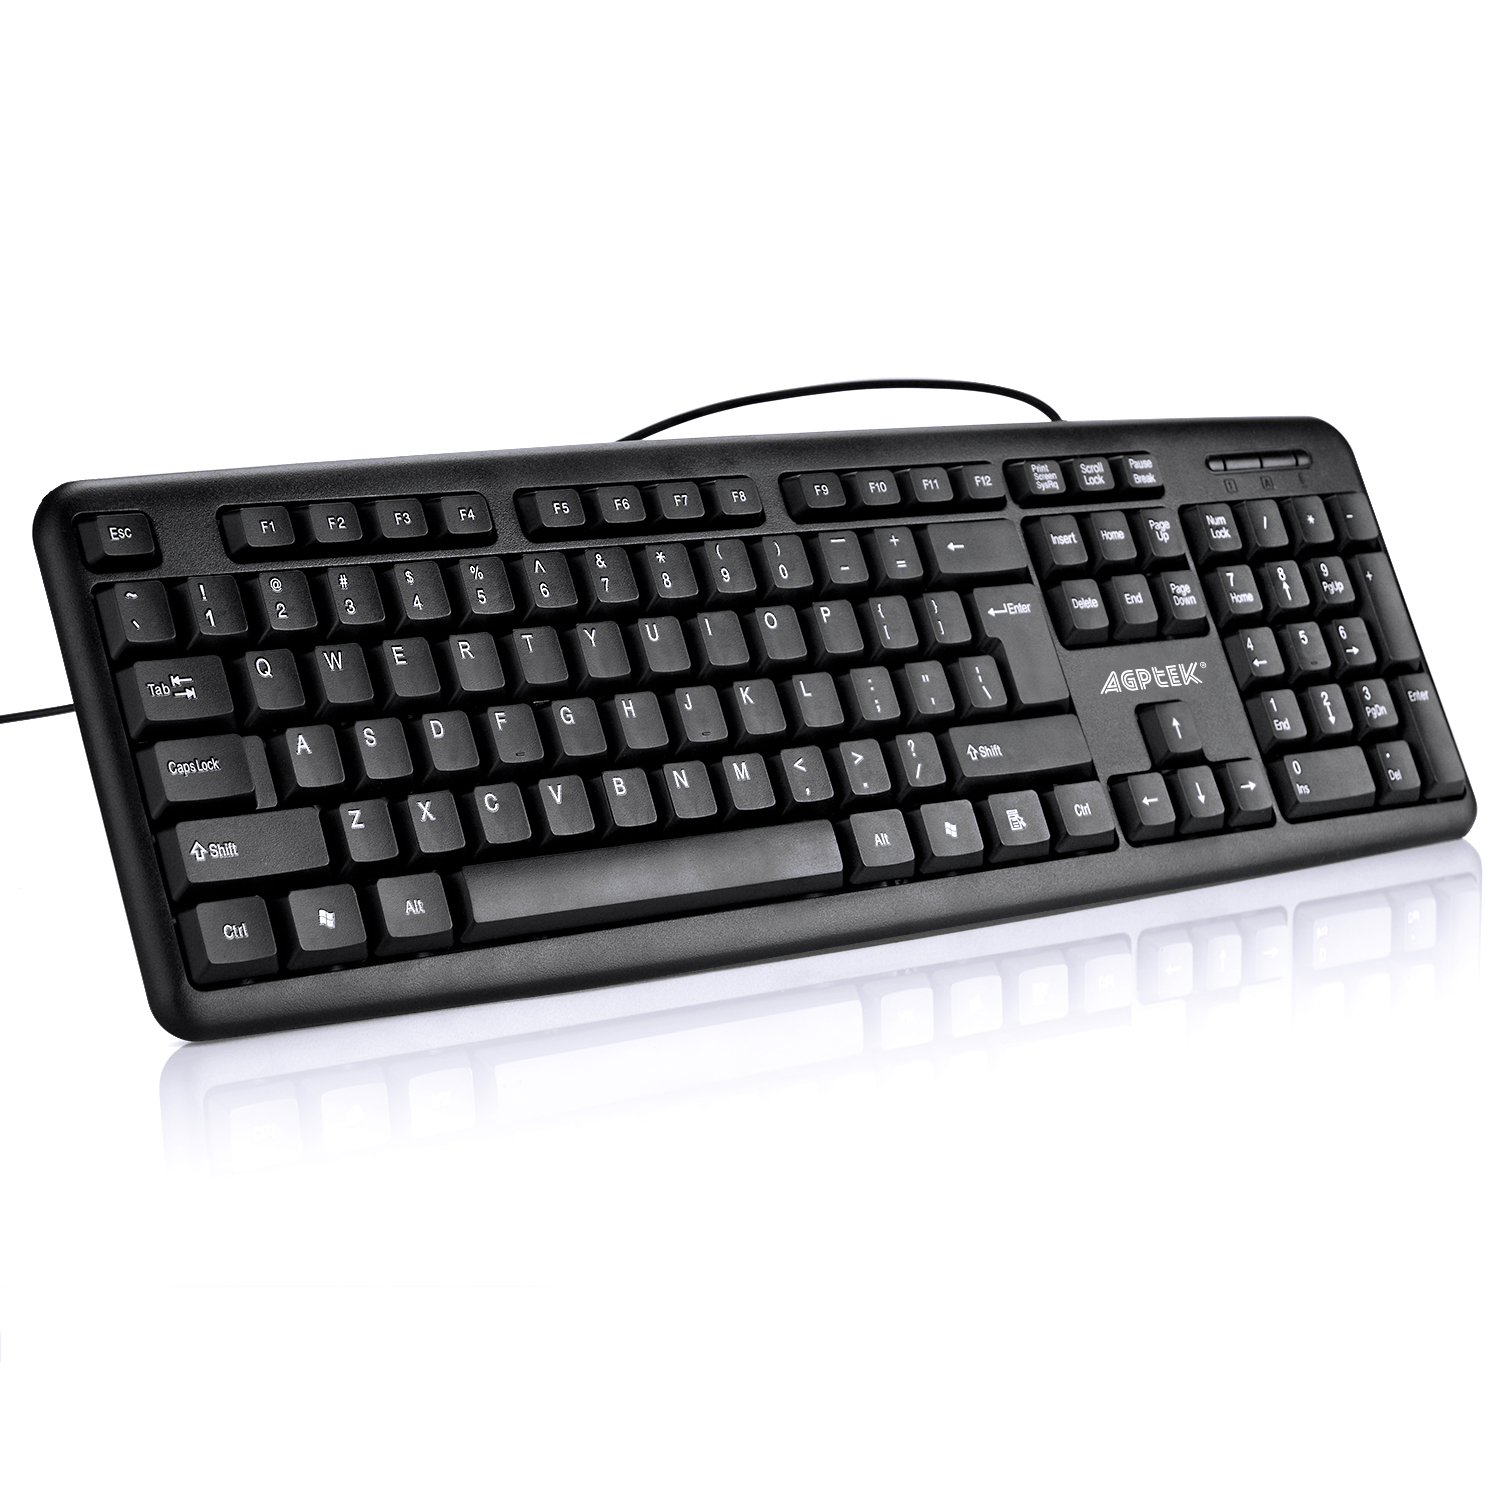 USB Wired Keyboard for Windows 10 / 8 / 7 / Vista / XP (Black)